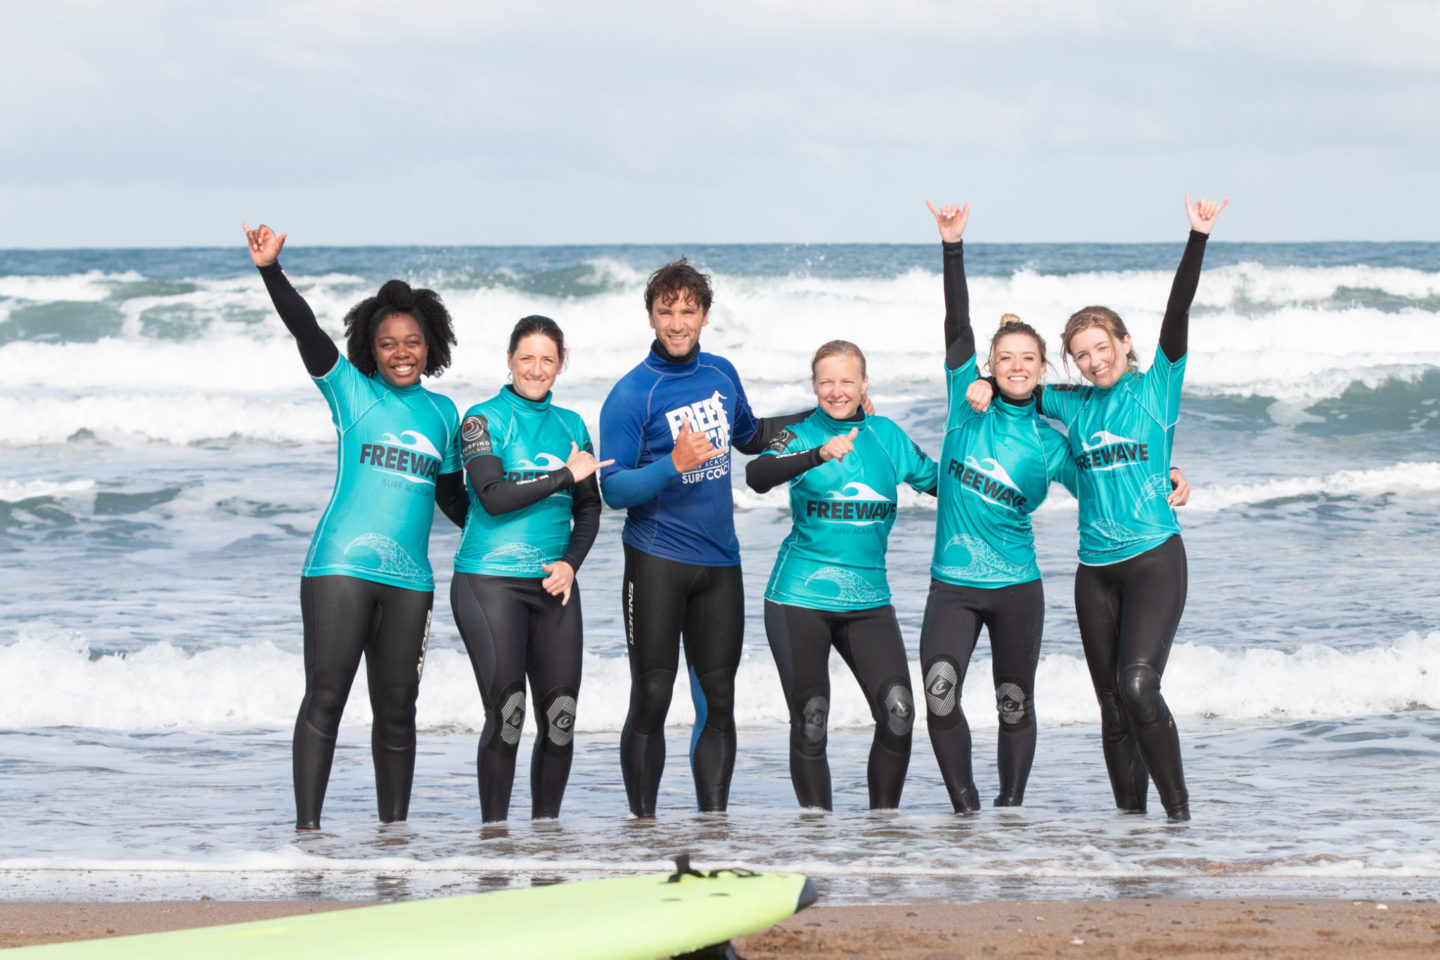 freewave surf and yoga retreat Bude Cornwall images @Tommy_Hatwell